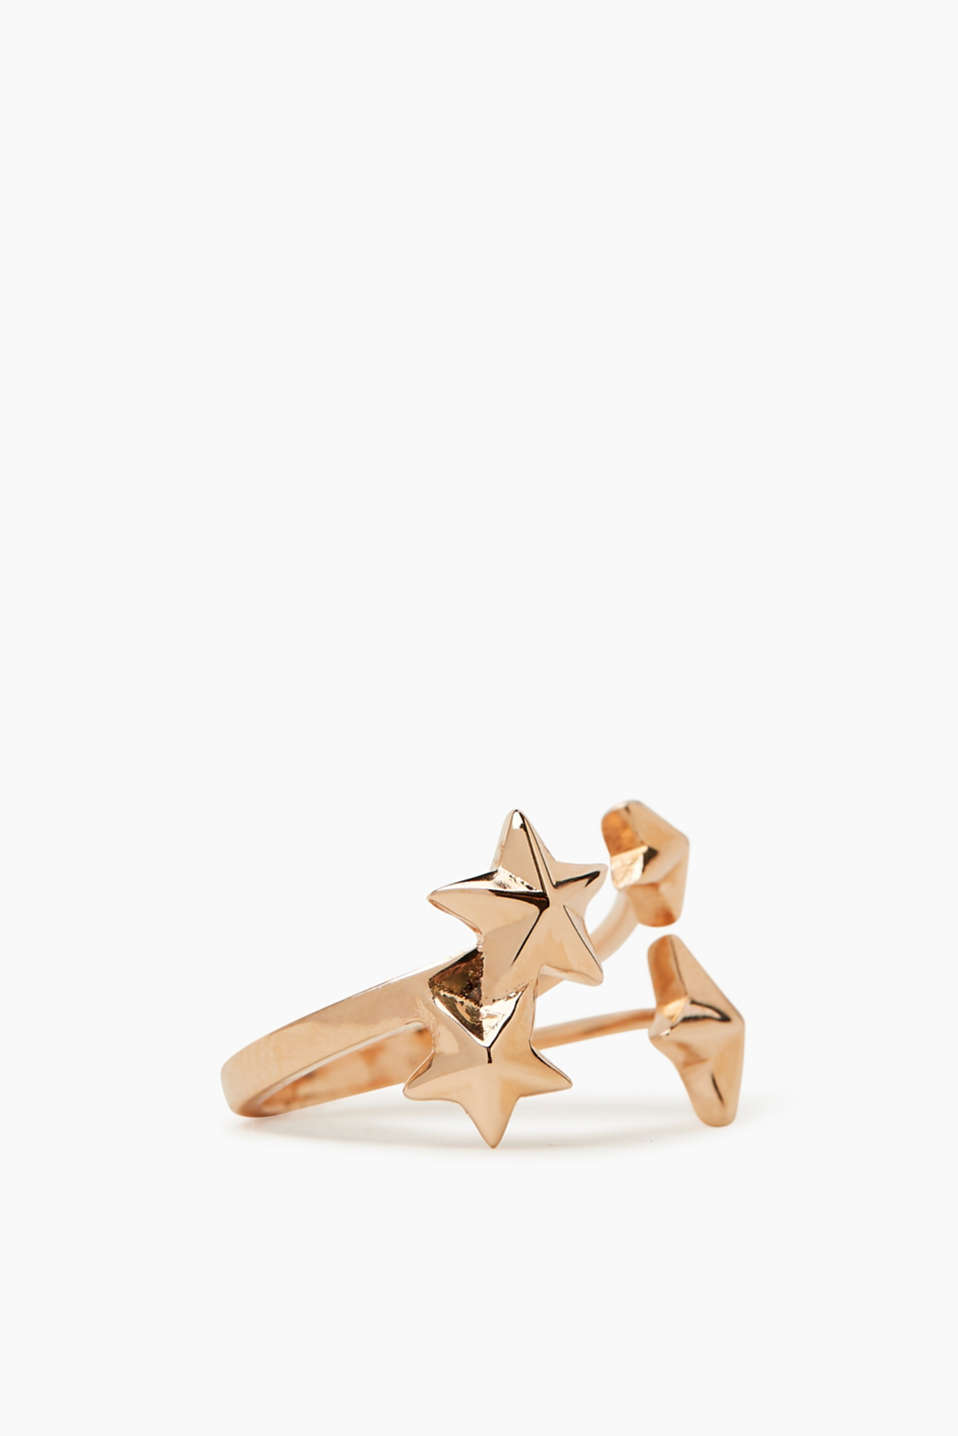 Cool deco, trendy rose gold: open ring with a decorative star made of sterling silver